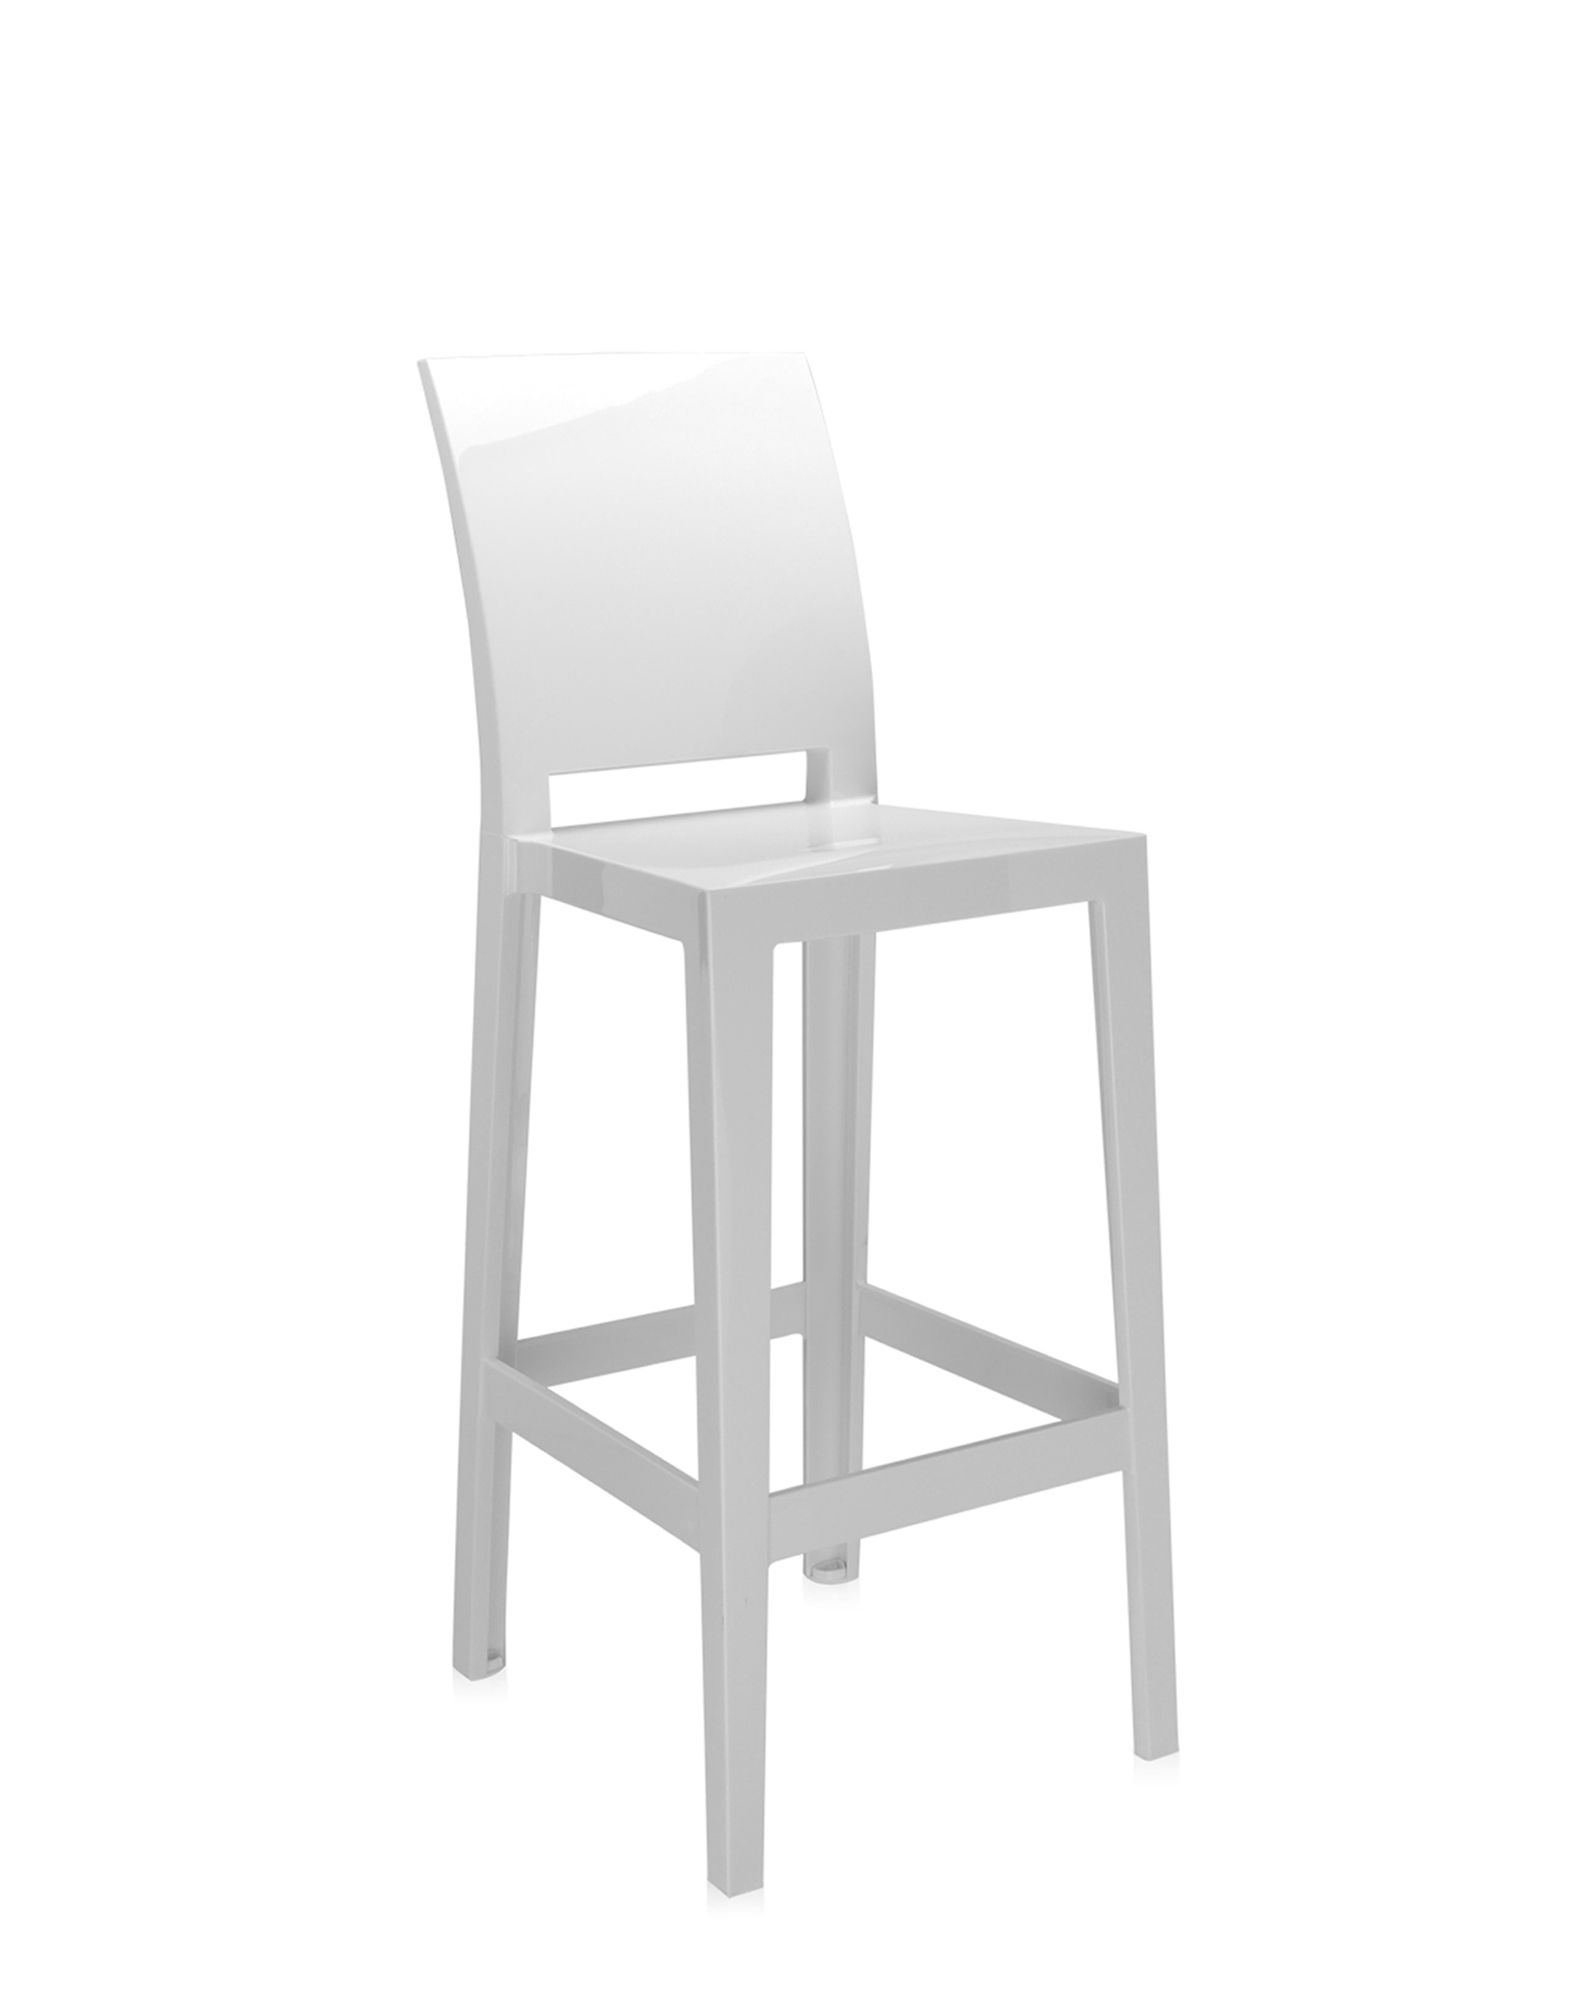 Kartell Stool One More Please white covering H 75 cm